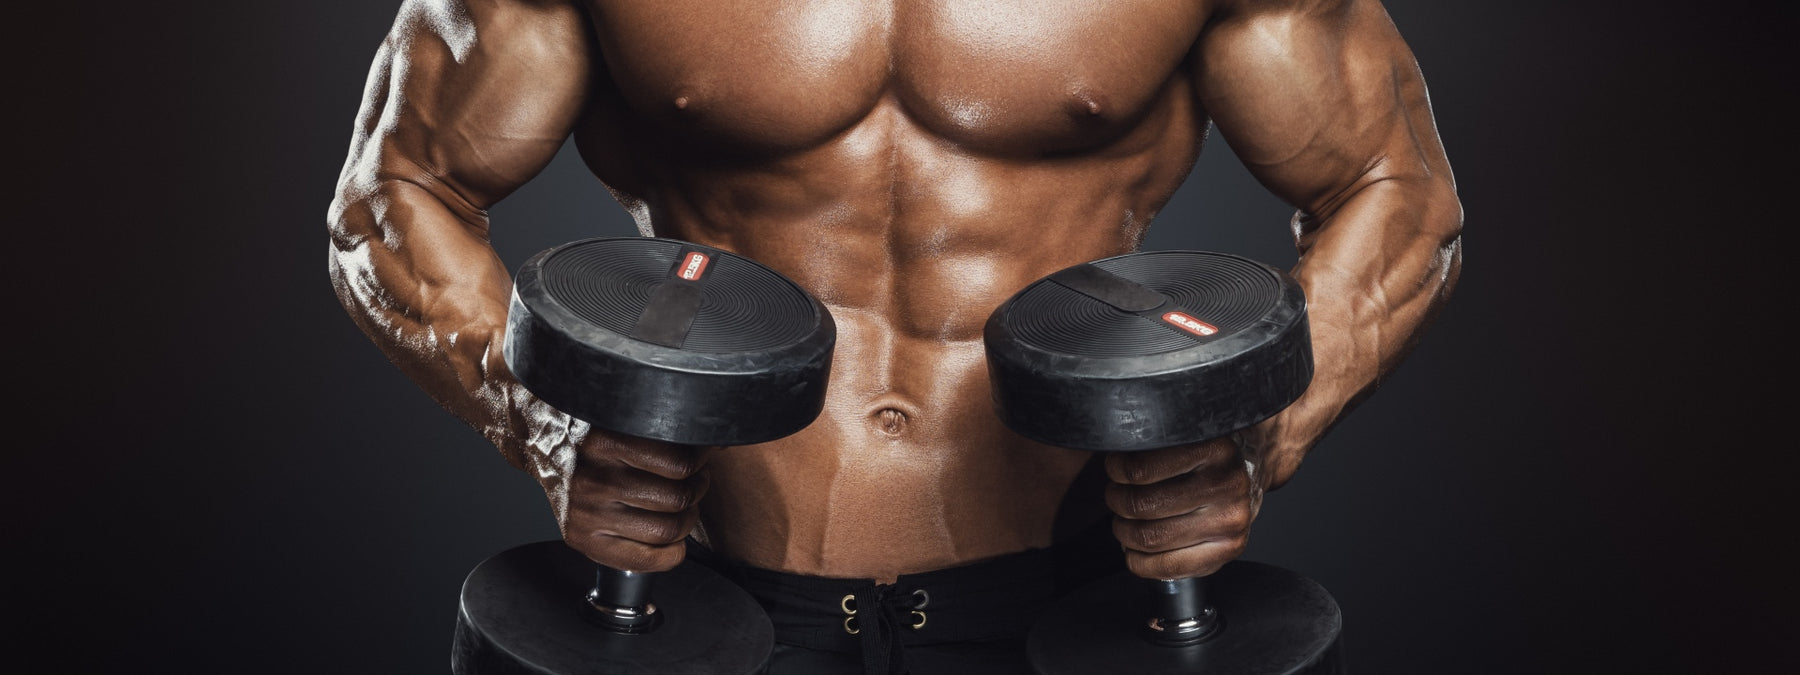 The 4 Best Muscle Building Exercises You've Never Tried